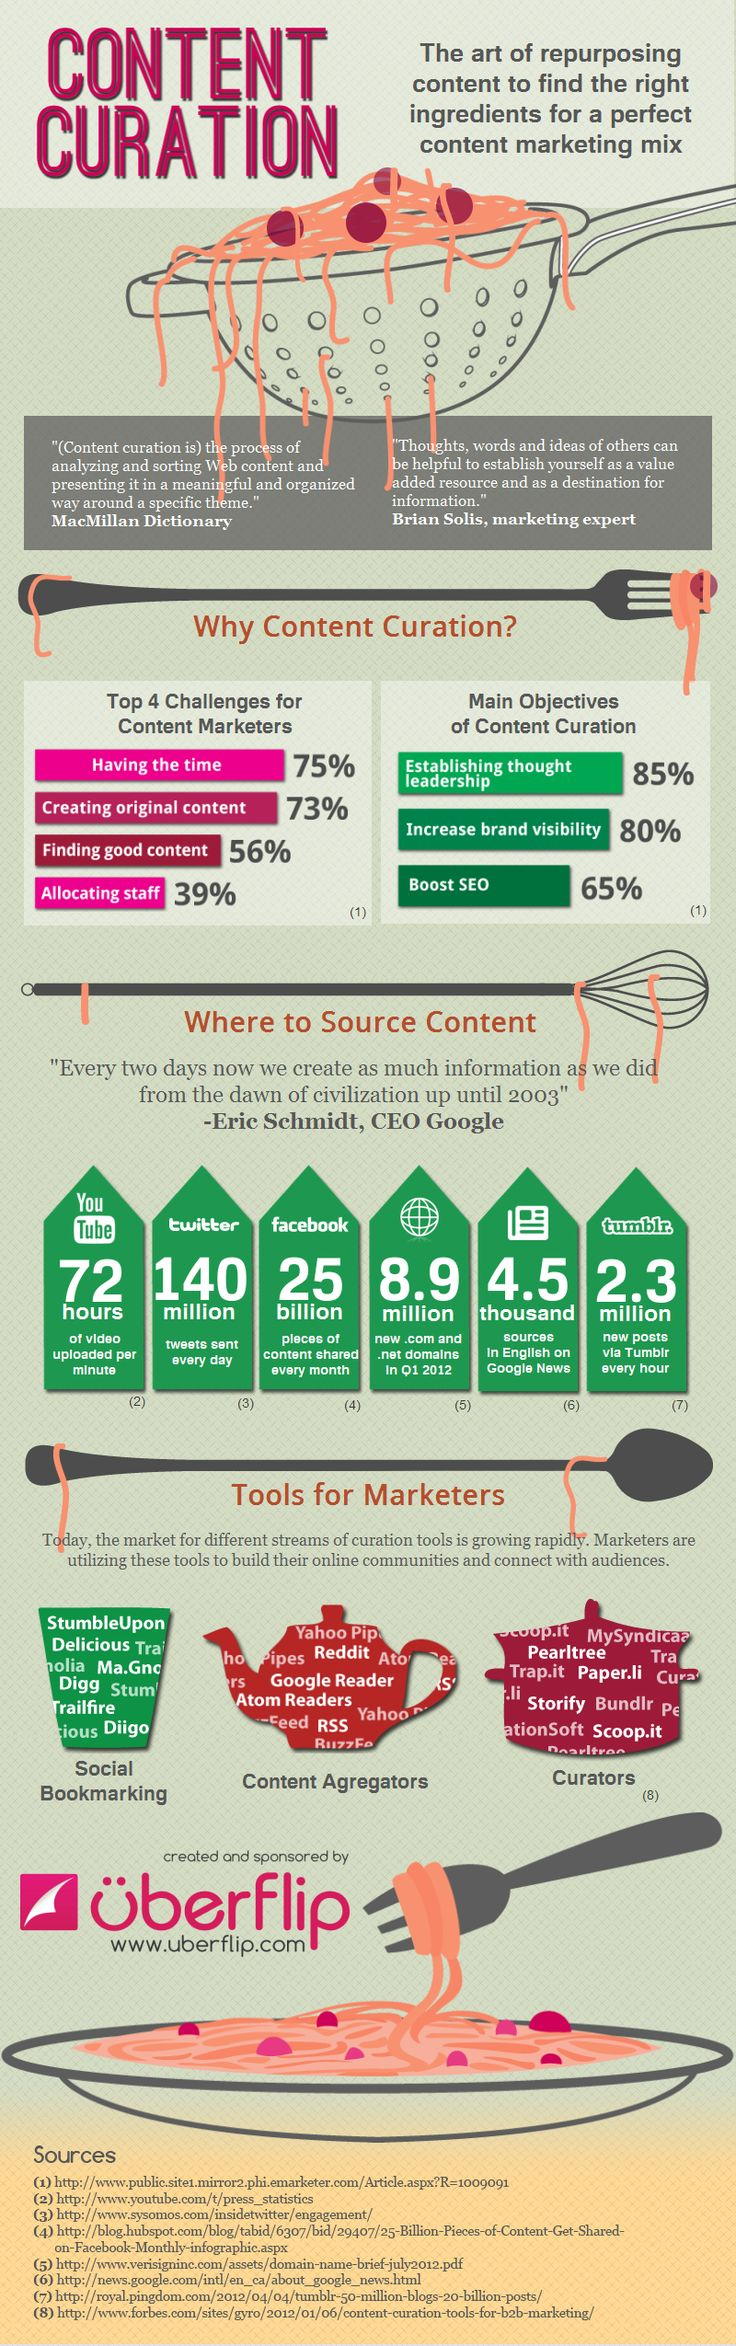 Using Content Curation as a Source for Perfect Content Marketing Mix